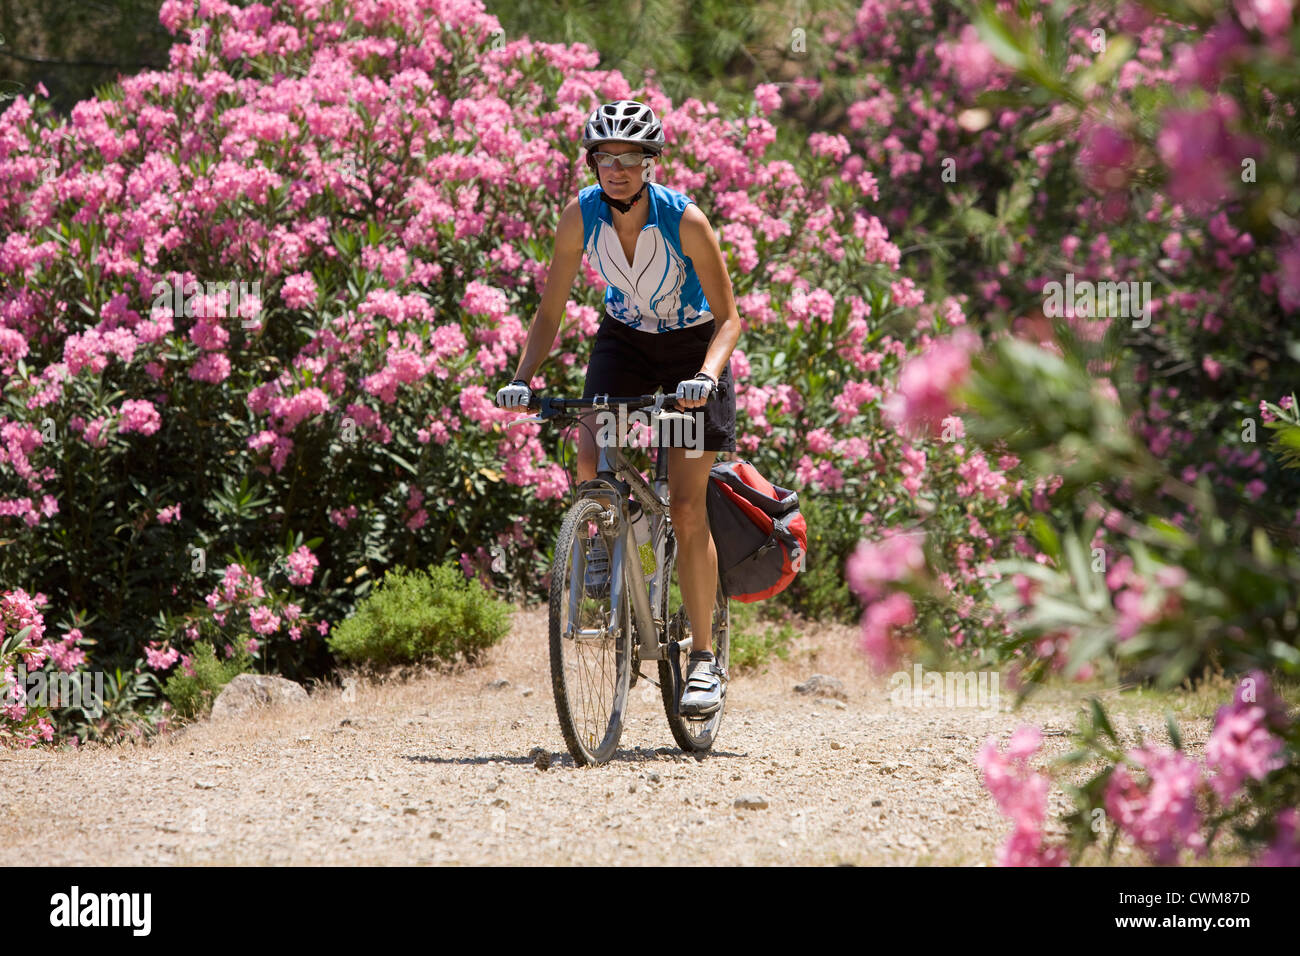 Turkey, Mid adult woman cycling through dirt track - Stock Image